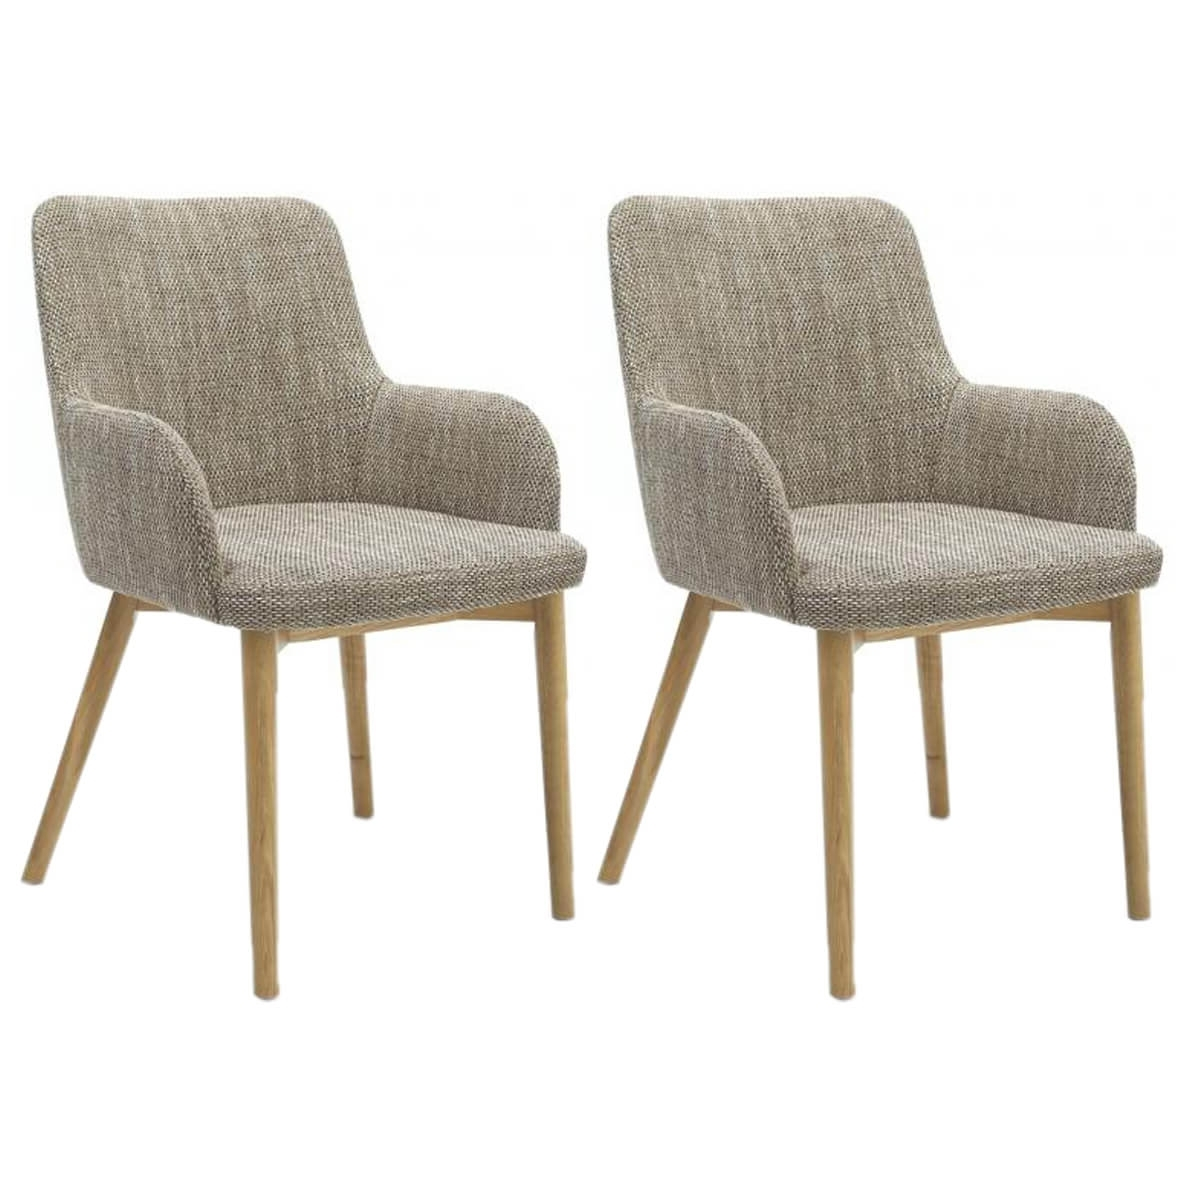 Sidcup Dining Chairs Fabric Tweed (Pair) Inside Trendy Fabric Dining Chairs (View 5 of 25)